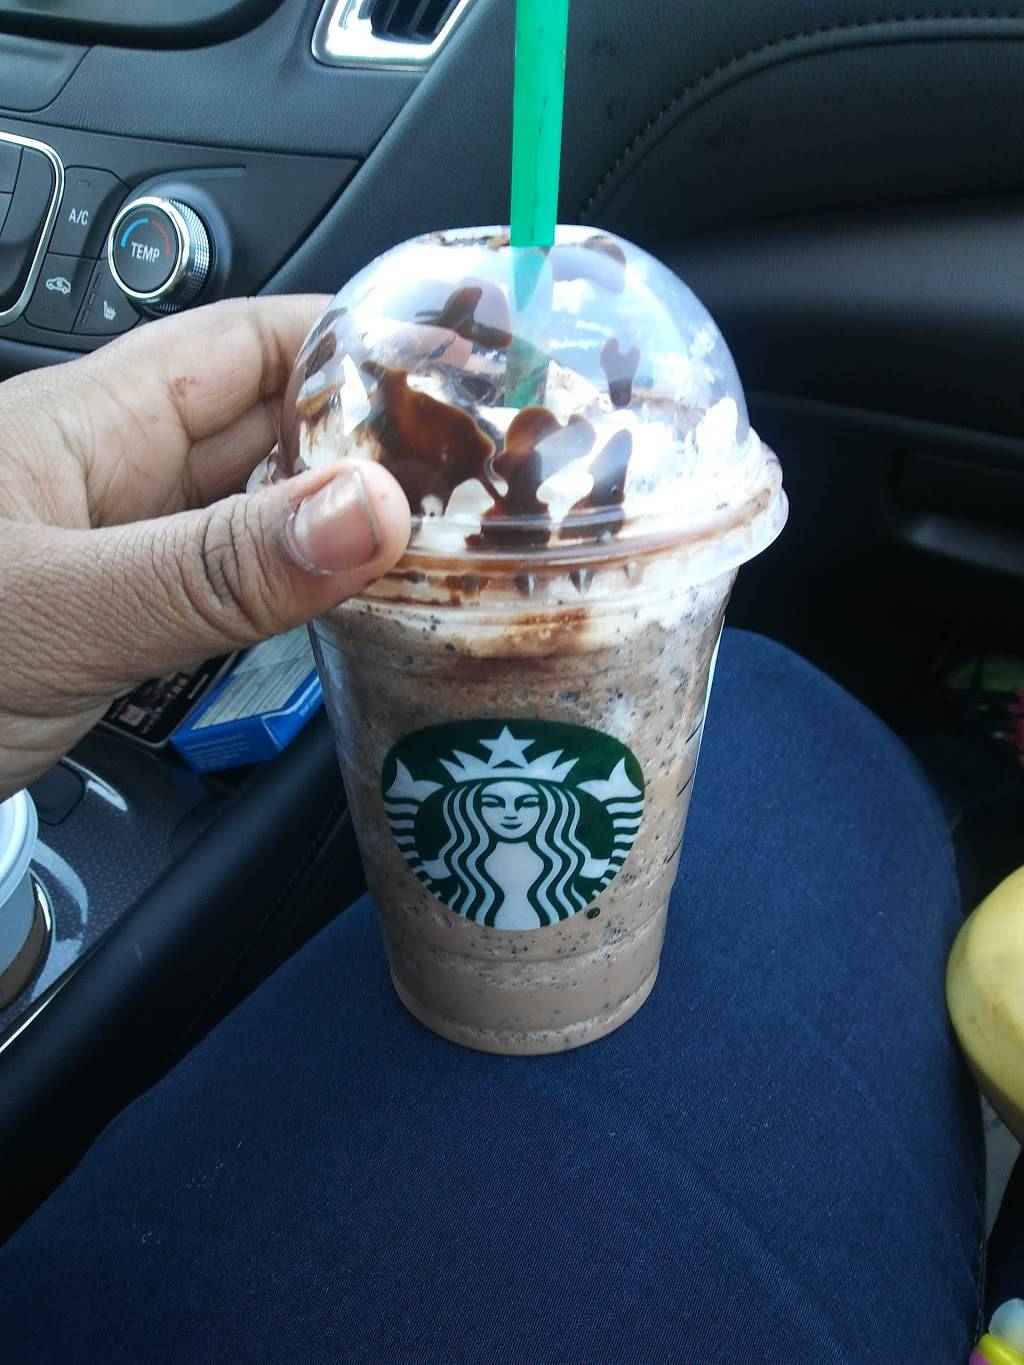 Starbucks   cafe   1249 Torrence Ave, Calumet City, IL 60409, USA   7087309512 OR +1 708-730-9512